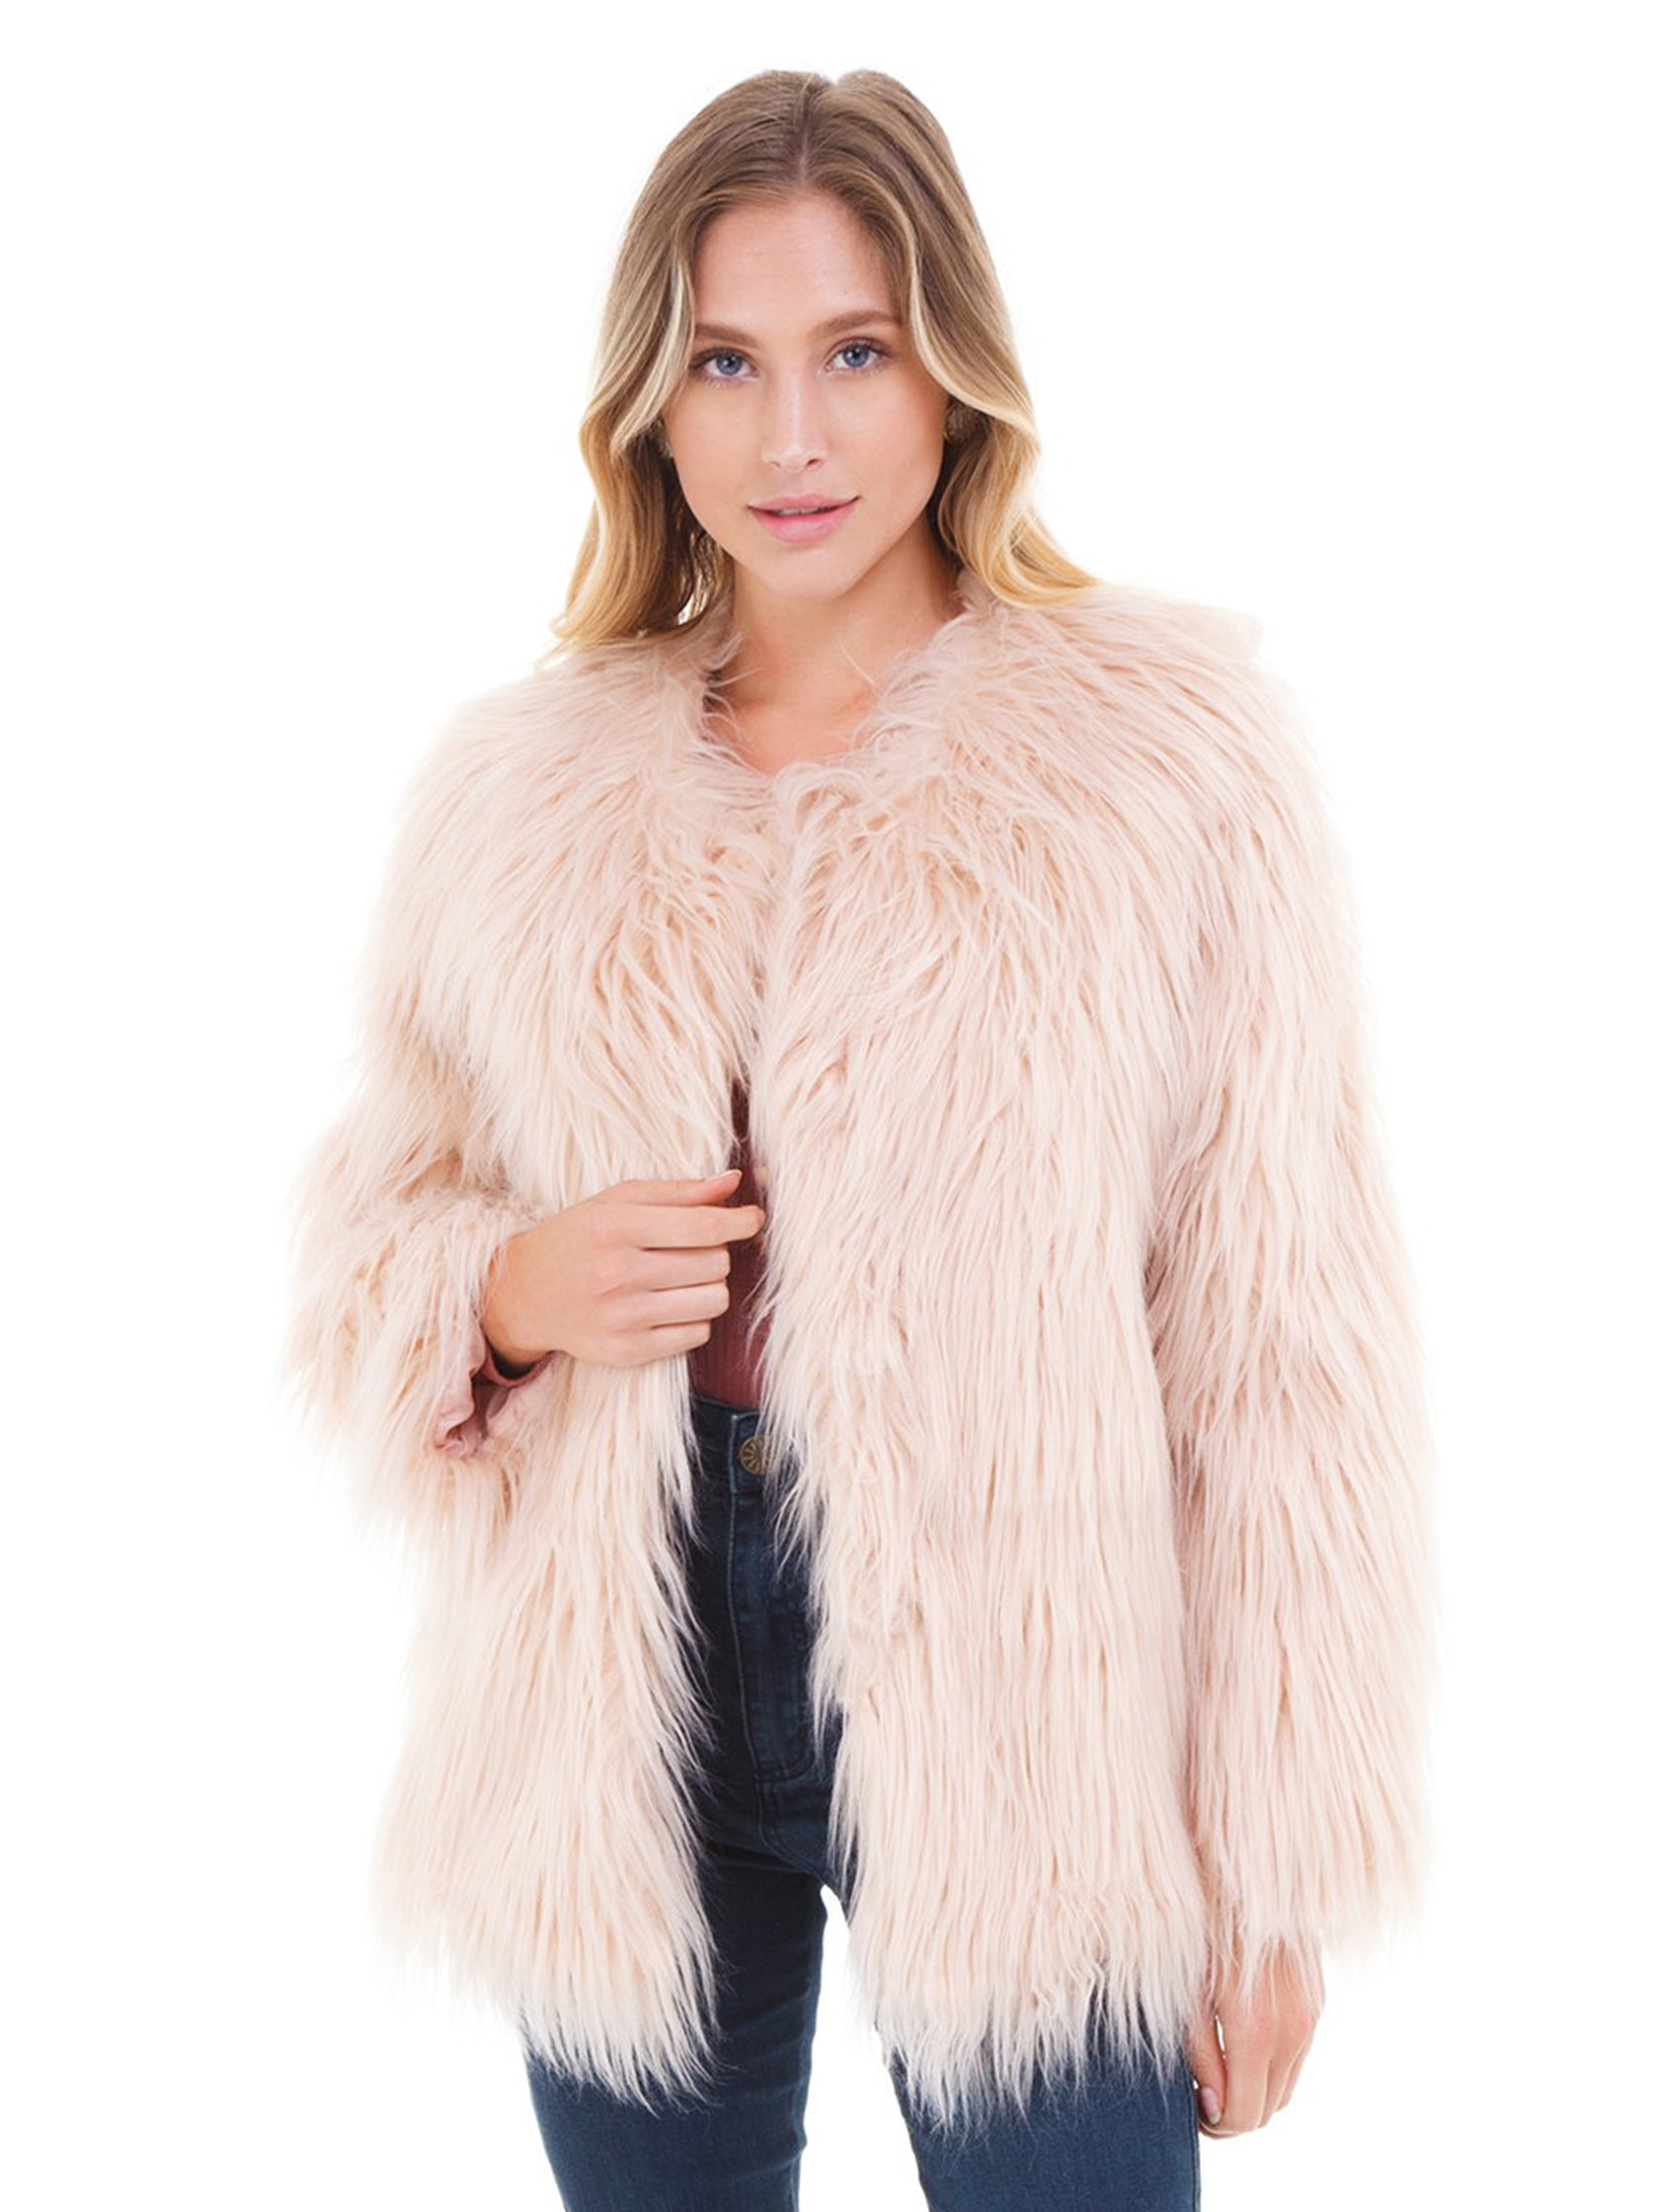 Woman wearing a jacket rental from LOST + WANDER called Warm Me Up Faux Fur Jacket